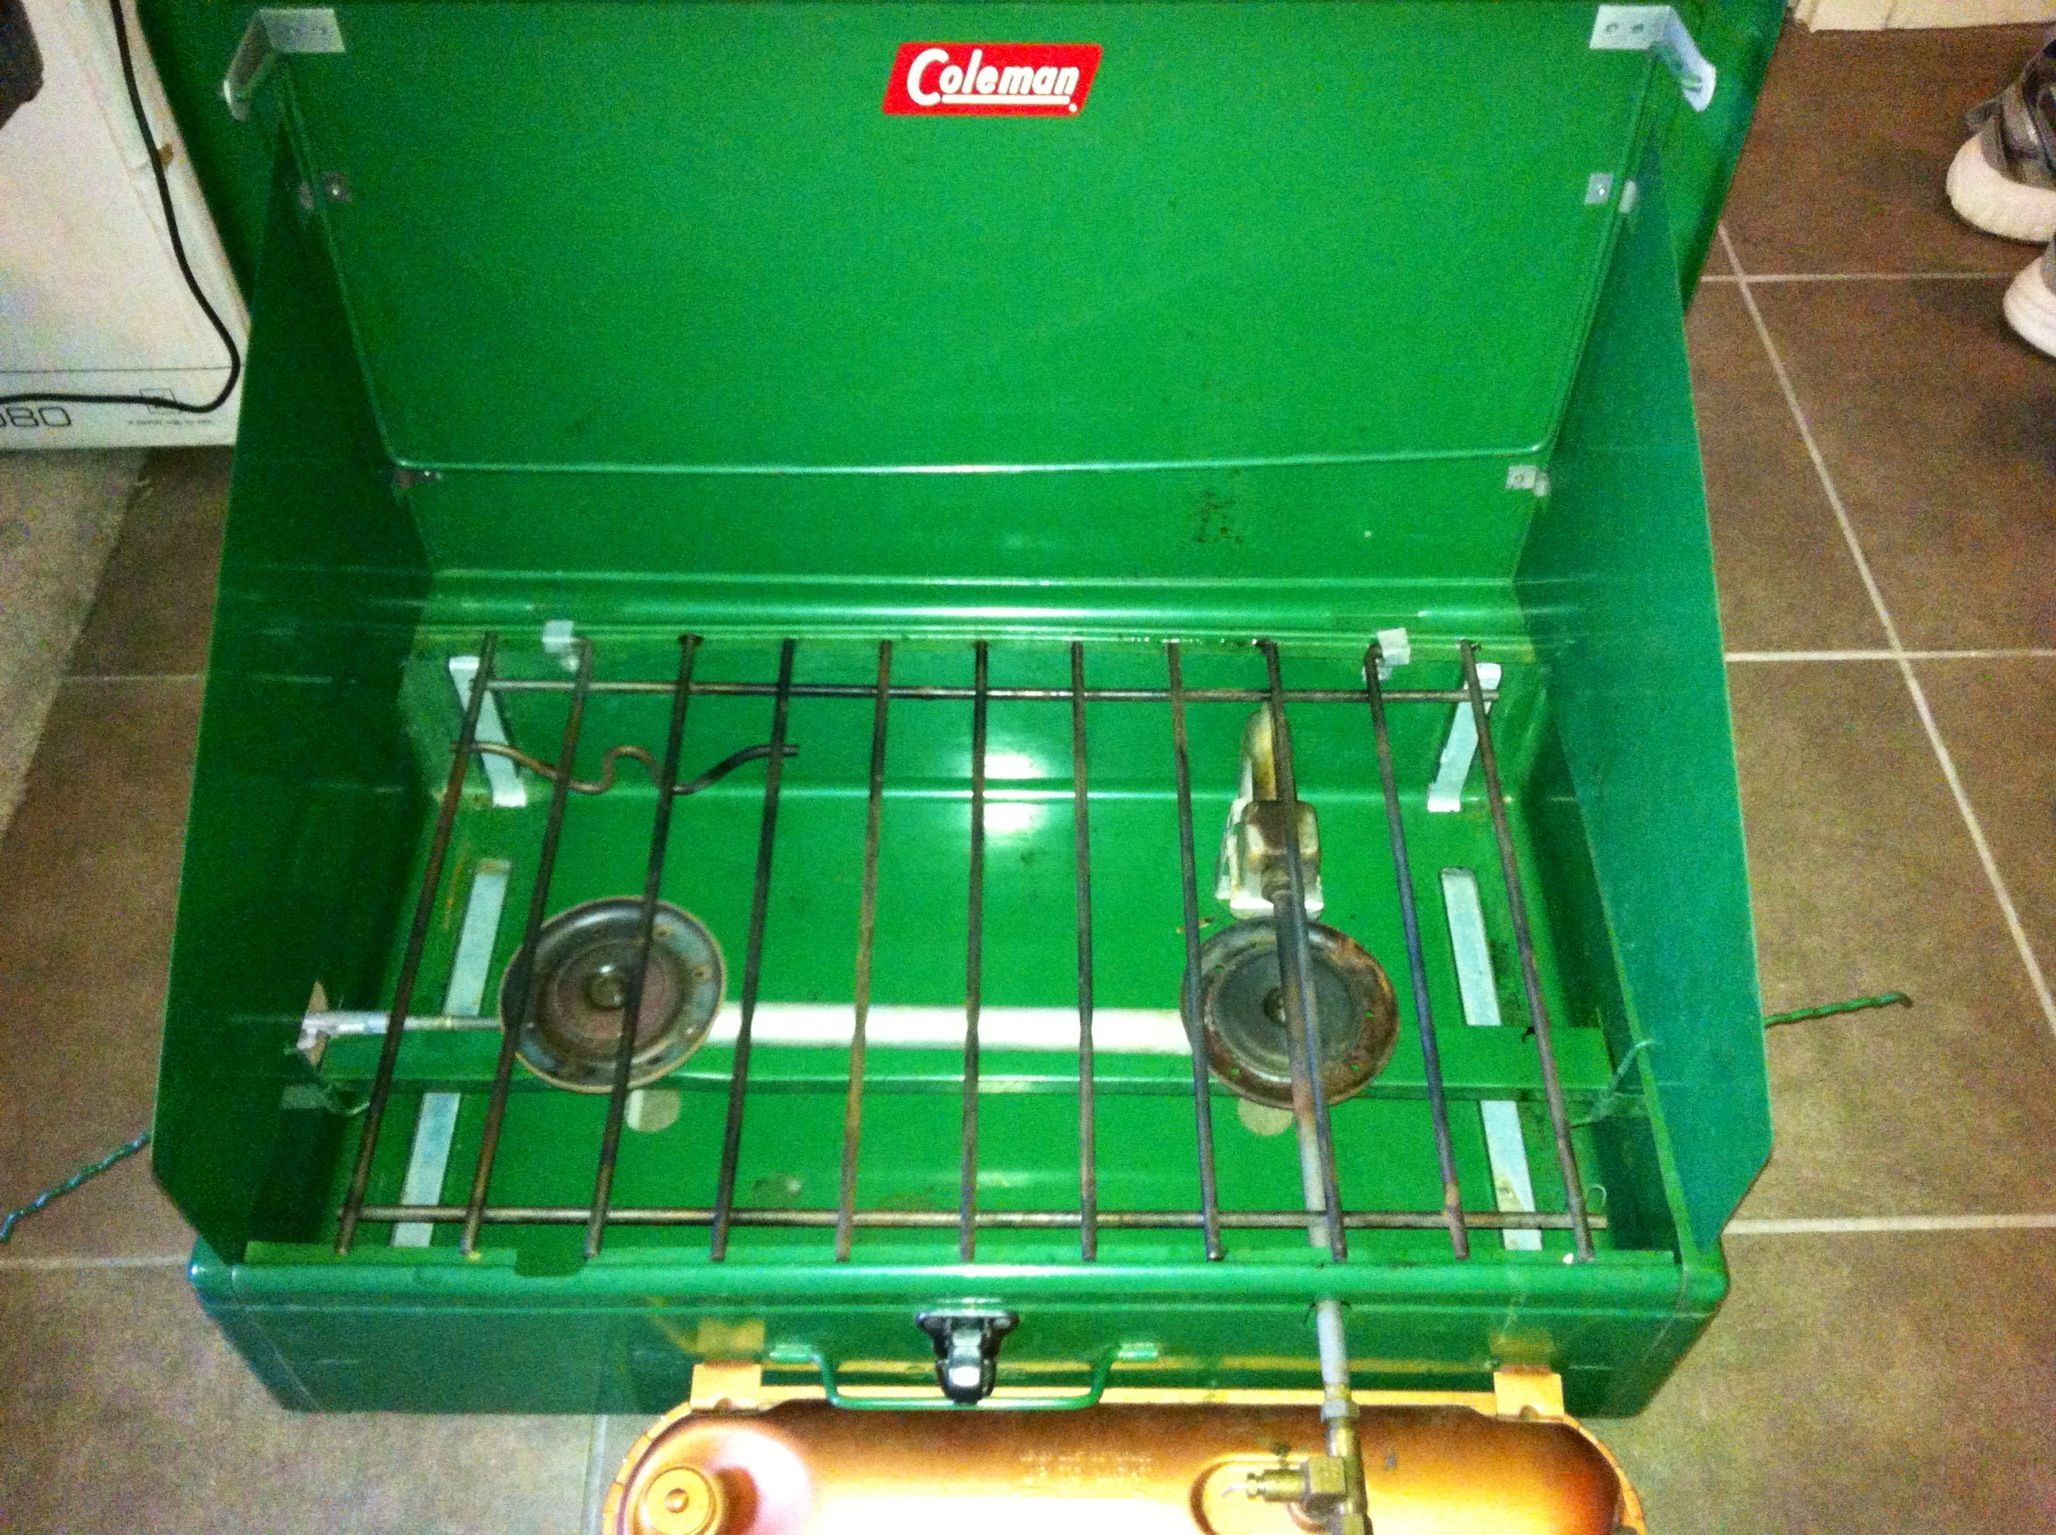 Old school camping! Coleman stove from 1950's still in box! $10 ...